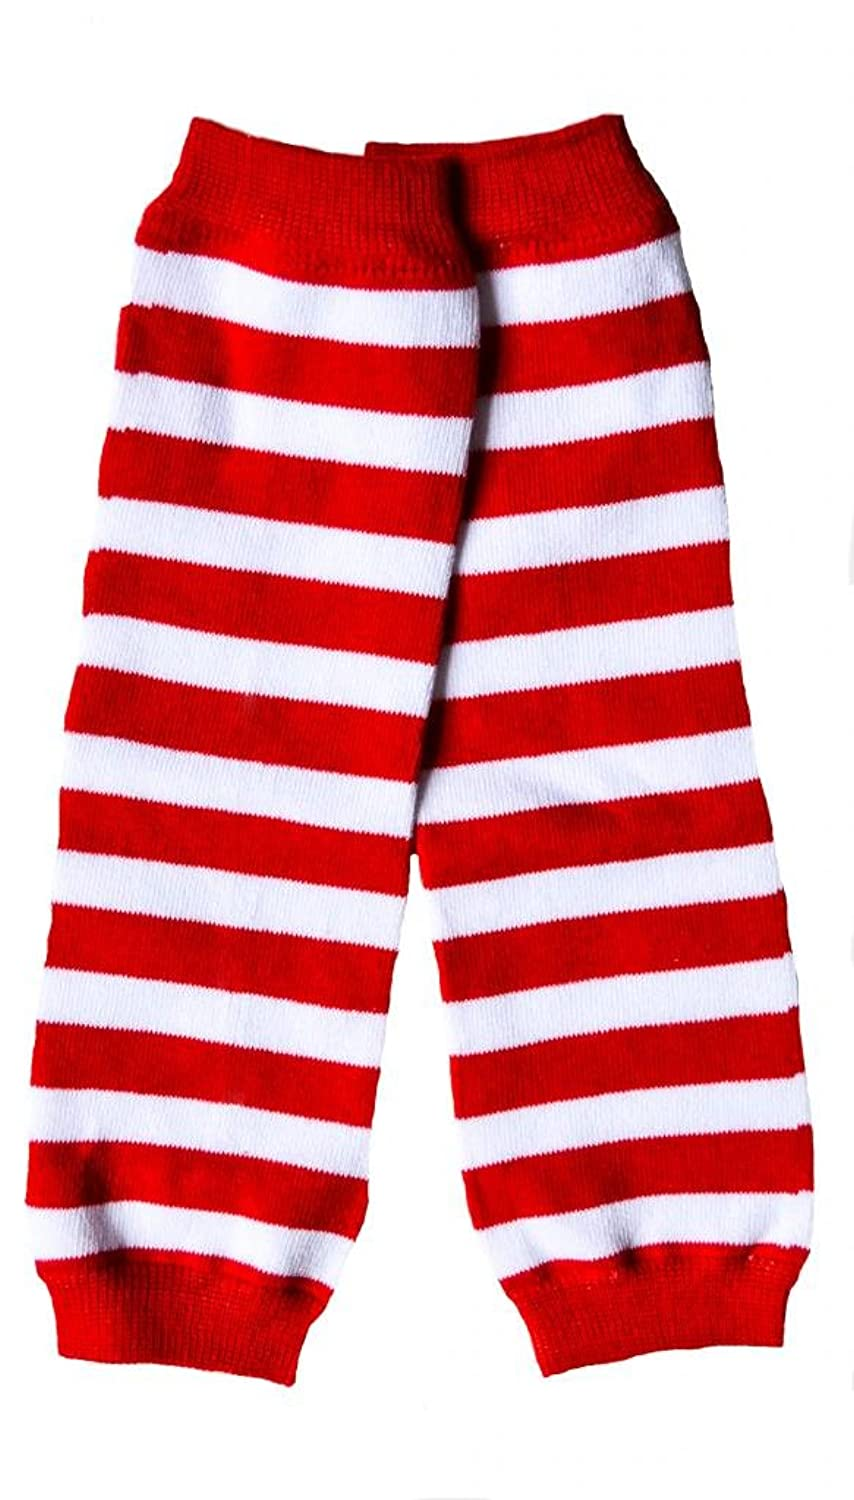 amazoncom red white striped cake smash leg warmers baby boy girl os halloween clothing - Valentines Day Outfit Baby Boy